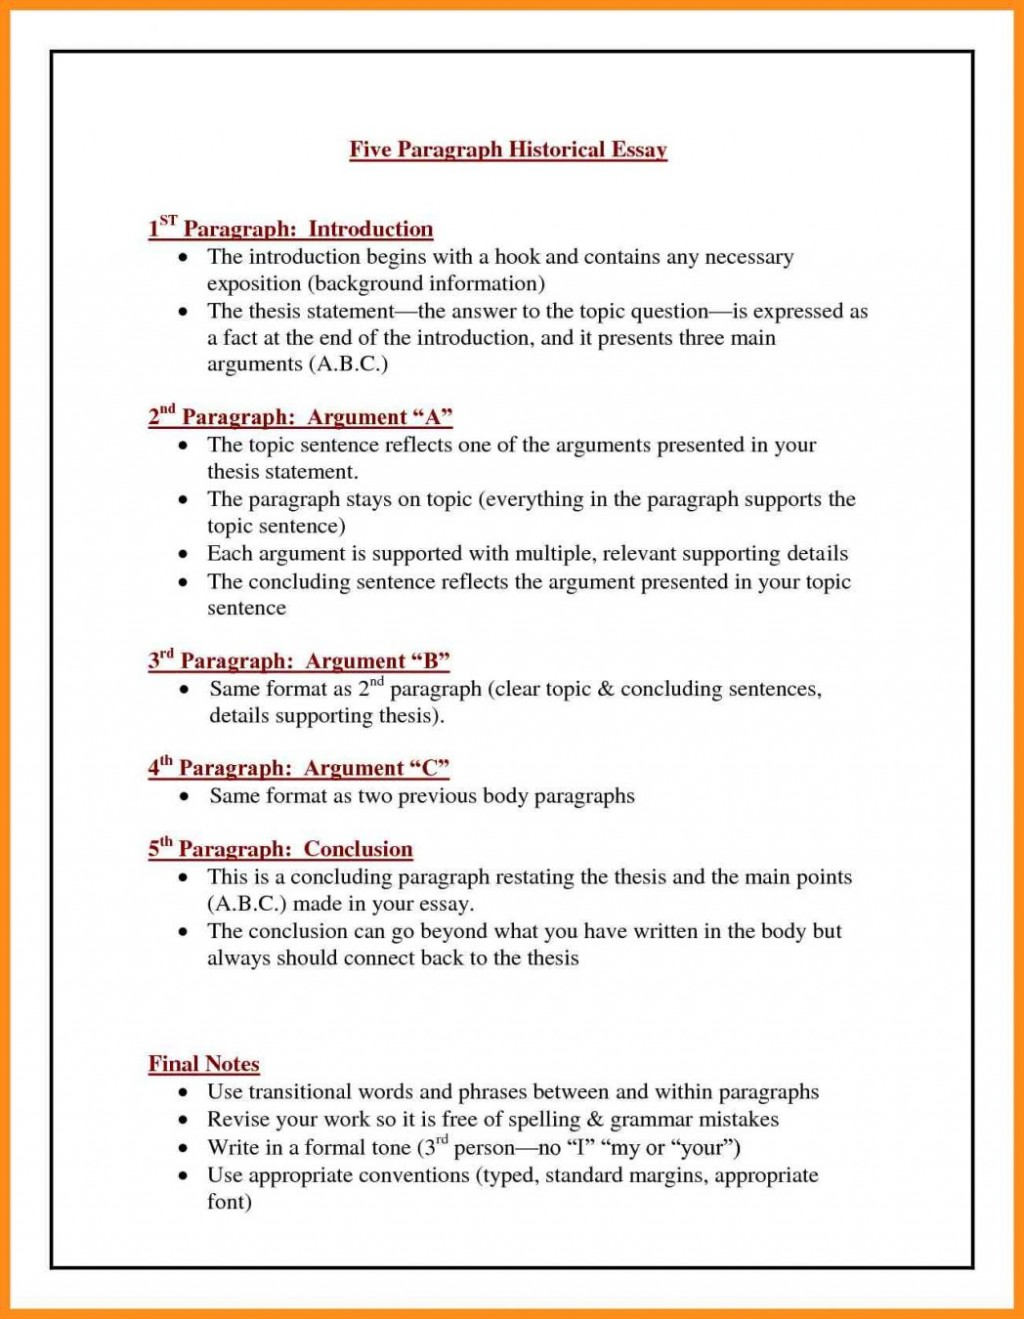 016 Essay Example How Many Sentences Are In Words Introduction Homework Writing Service To Start Off Sentence An Best Ideas Of Sample Fiveagraph Amazing Word Is A Much Make Paragraph 250 Large